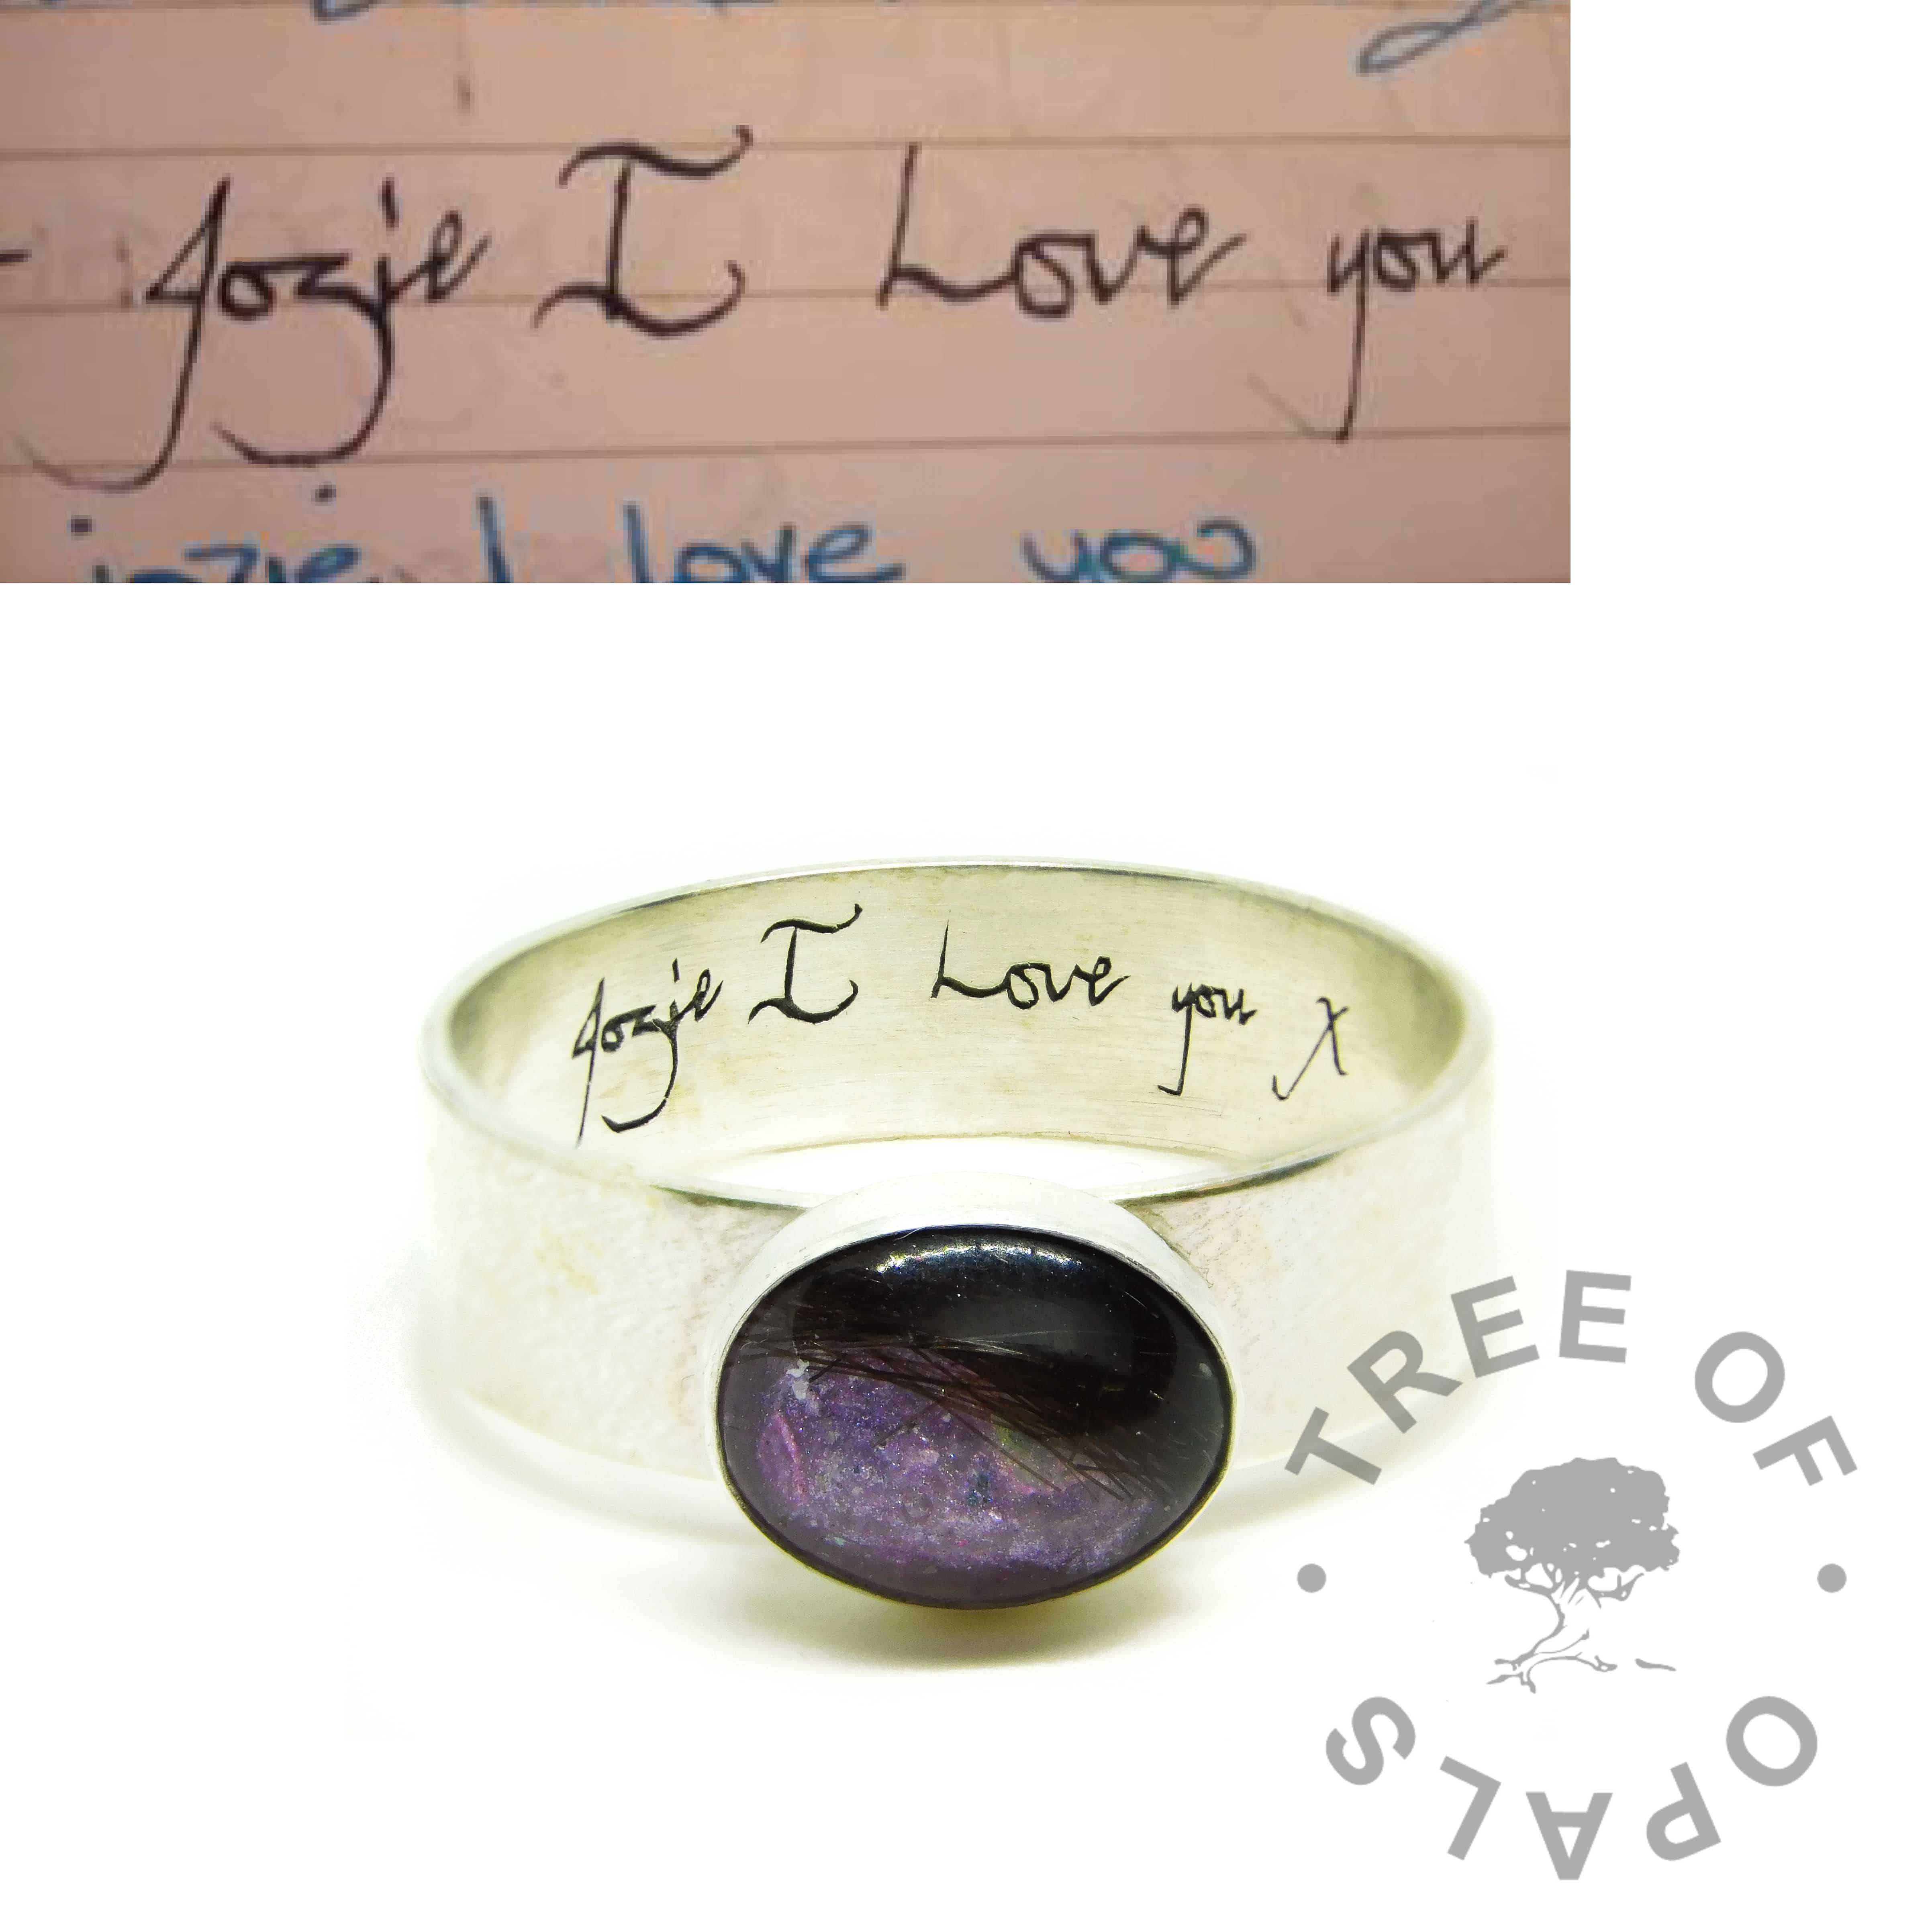 purple hair ring handwriting, lock of hair ring on 6mm shiny band with handwriting engraving on the inside. Orchid purple resin sparkle mix